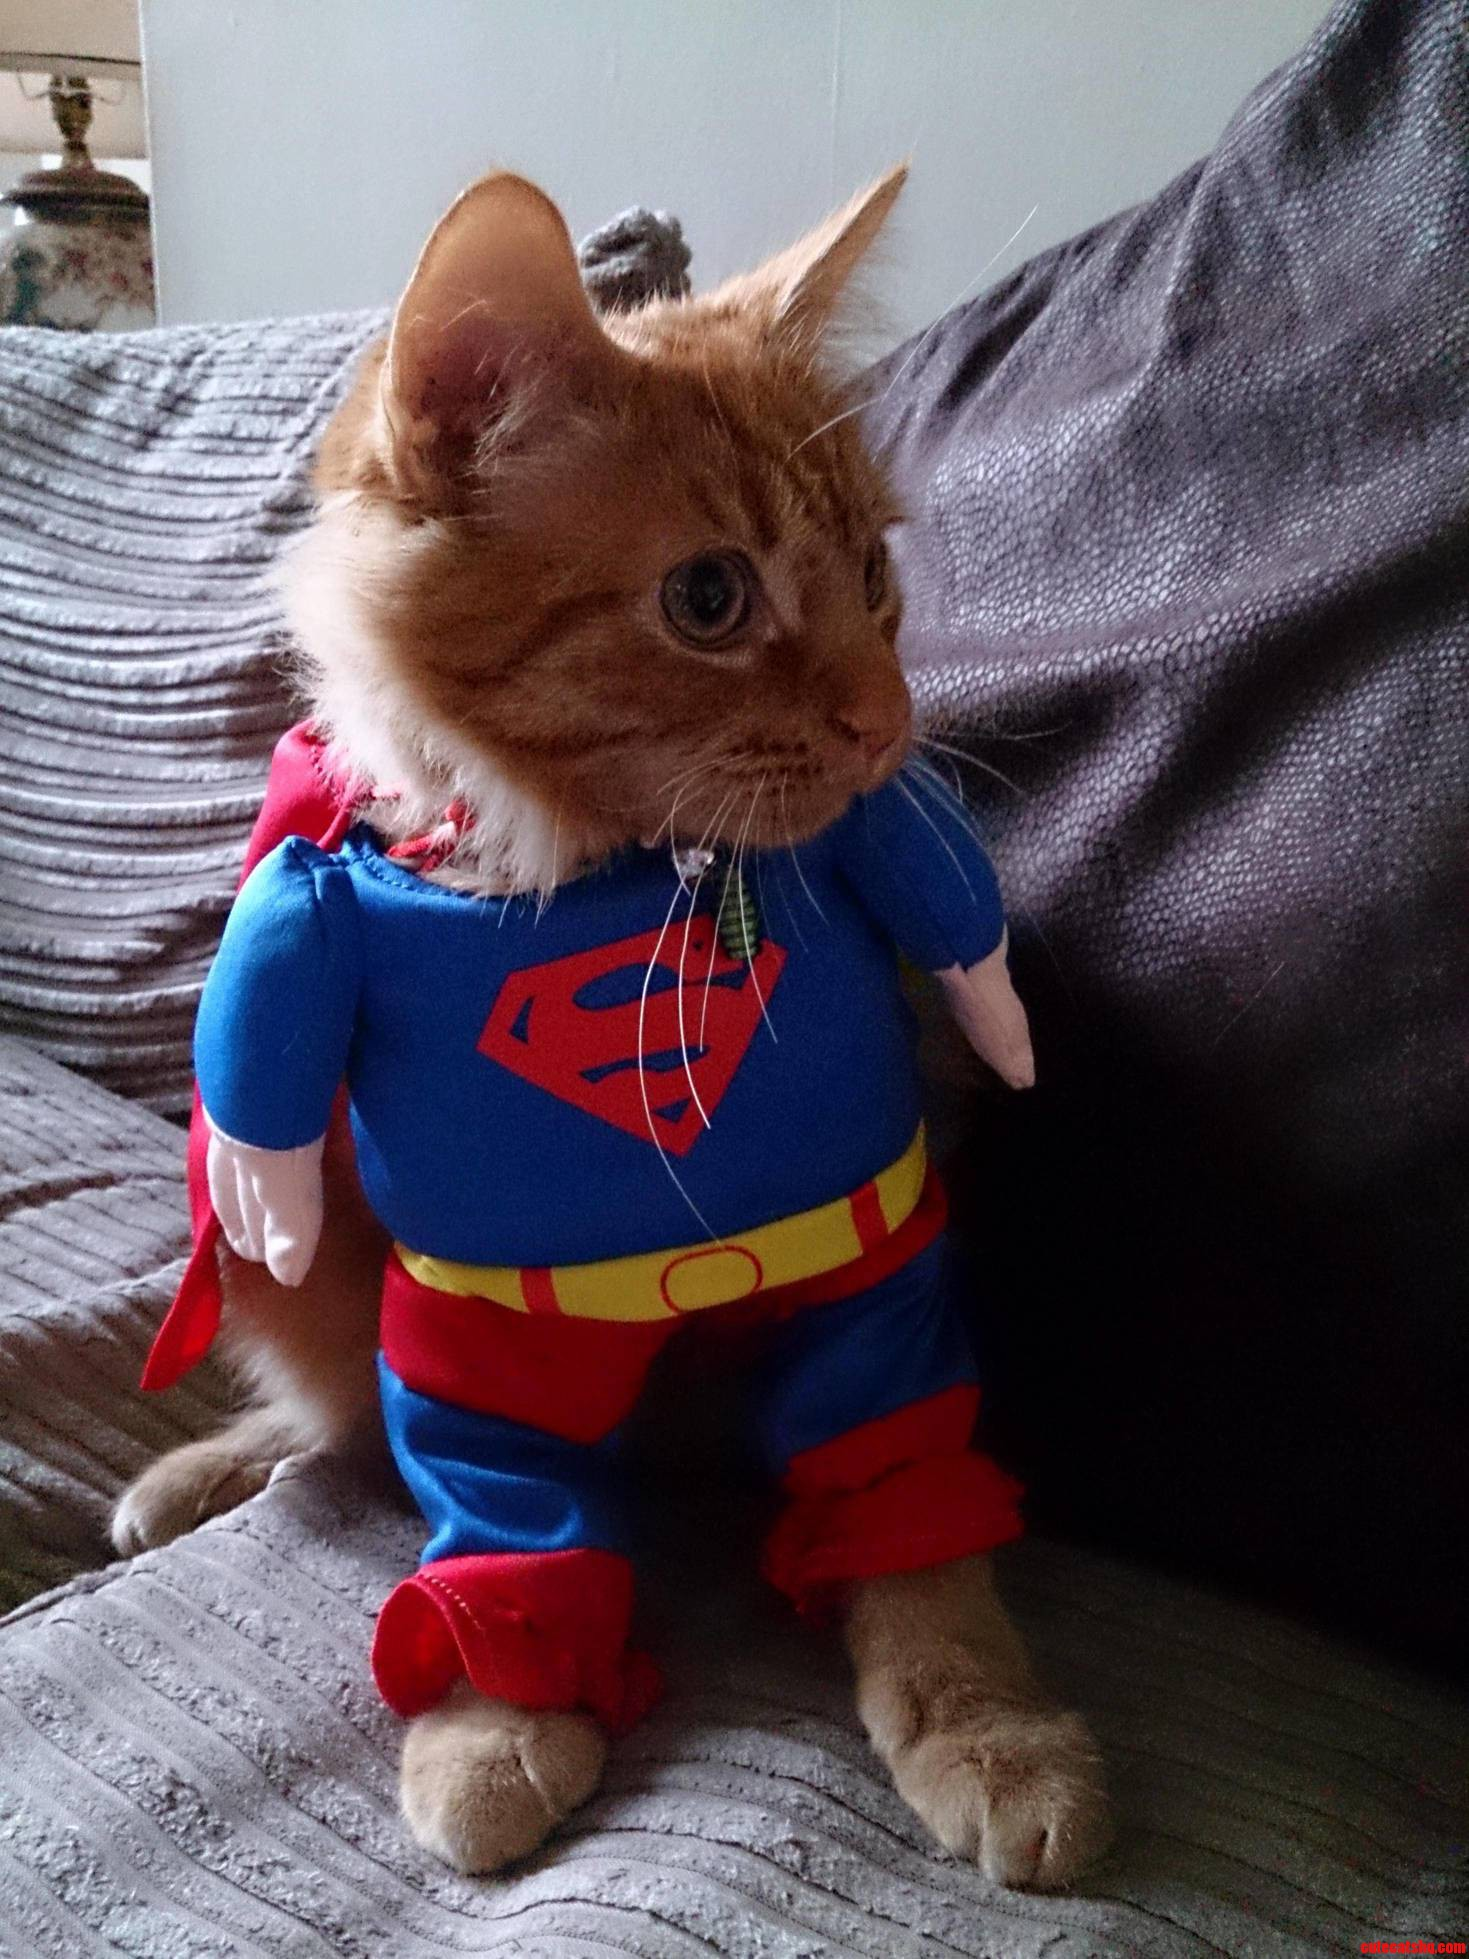 Super Cat Follow Wildeducation On Twitter For More Pics